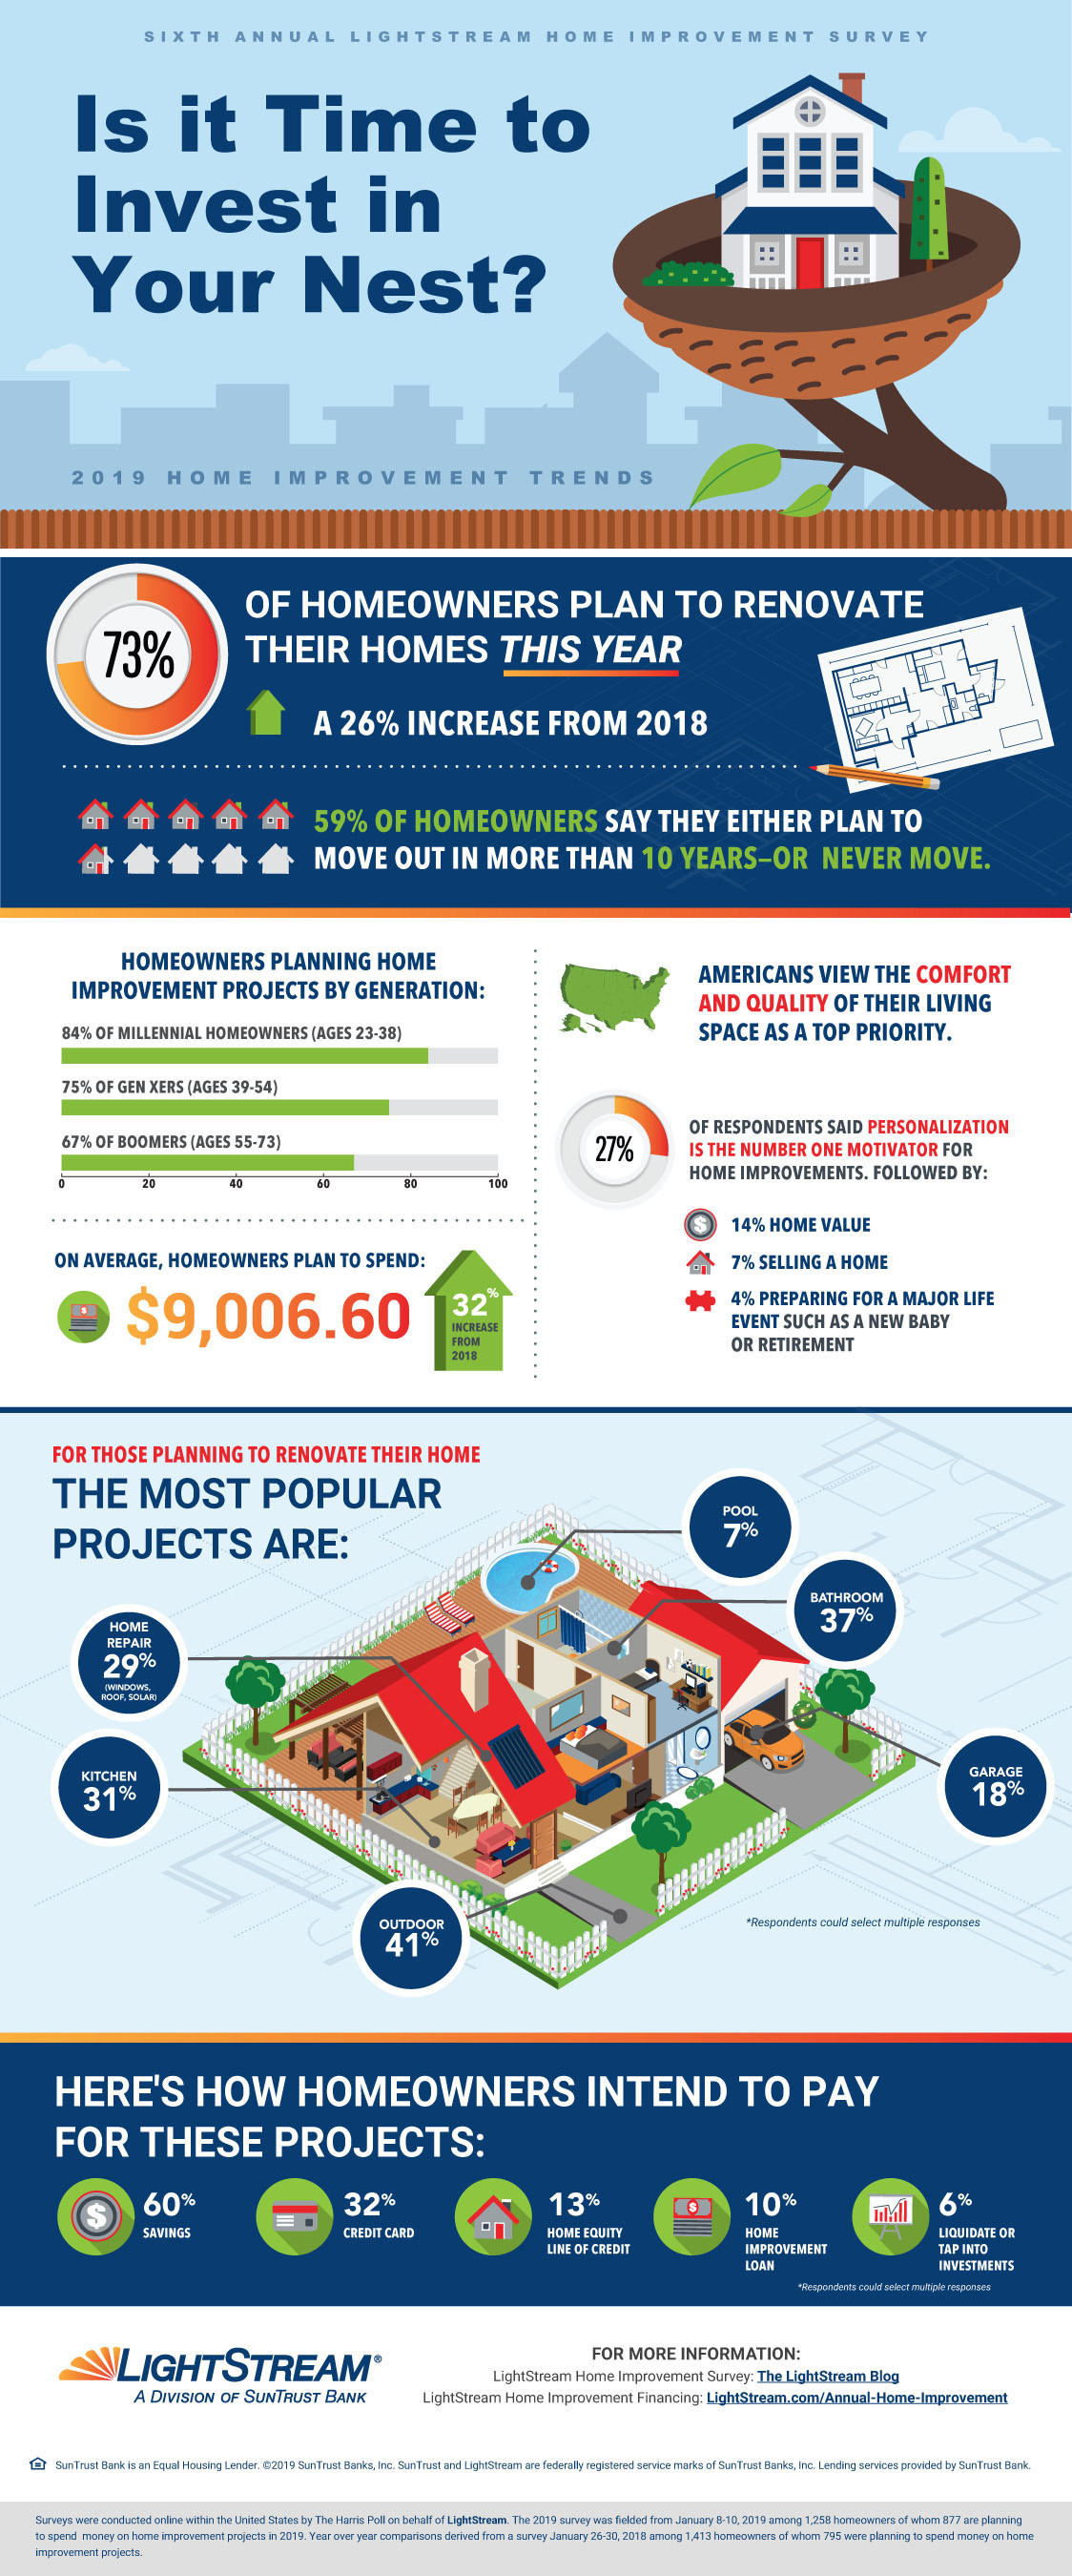 SunTrust remodel infographic. Visit source link at the end of the article for more information.